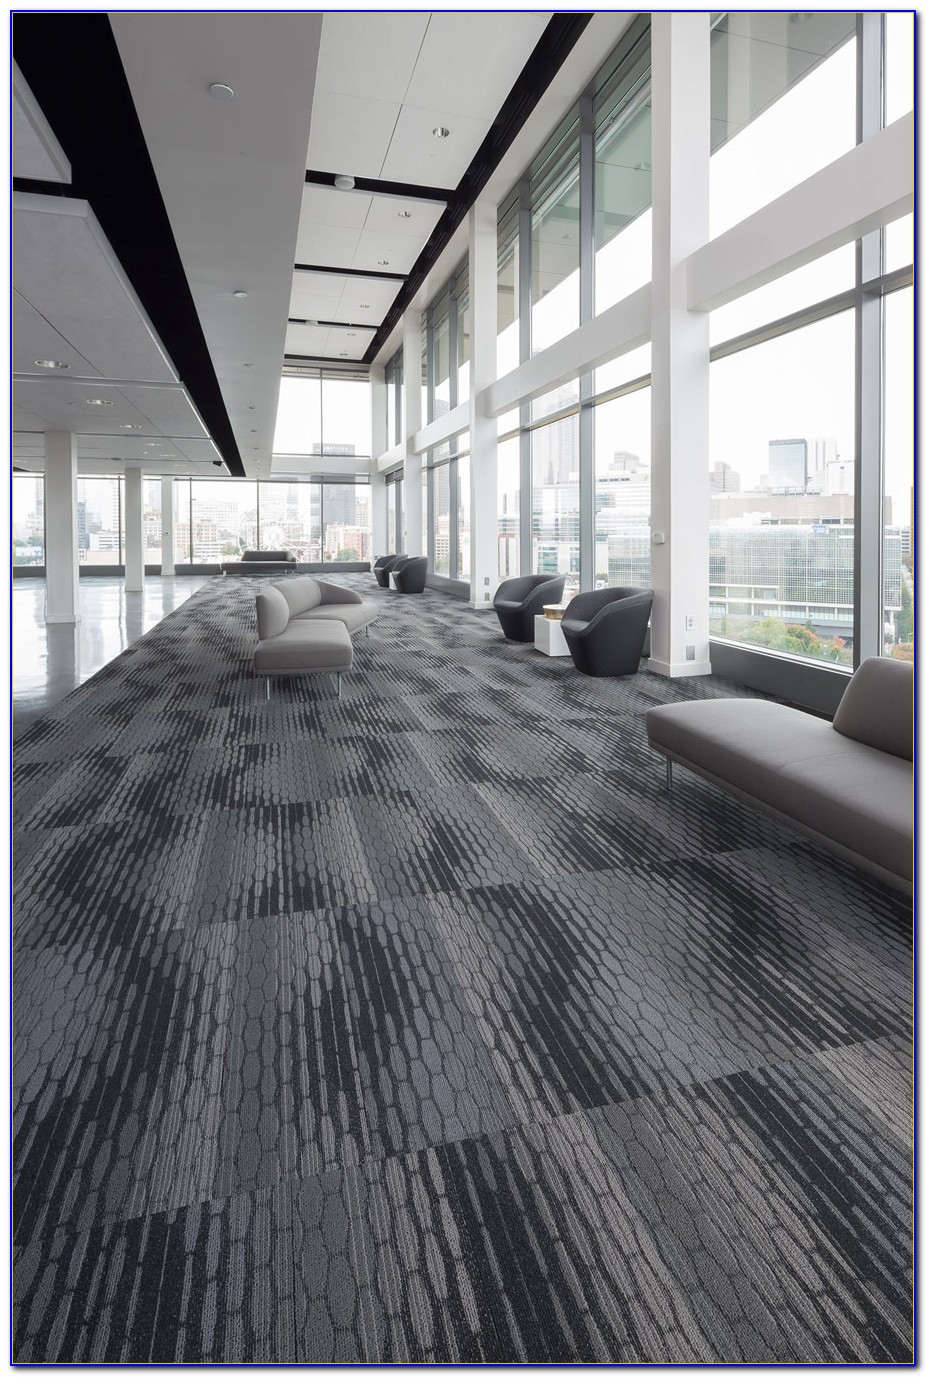 Mohawk Aladdin Commercial Carpet Tiles